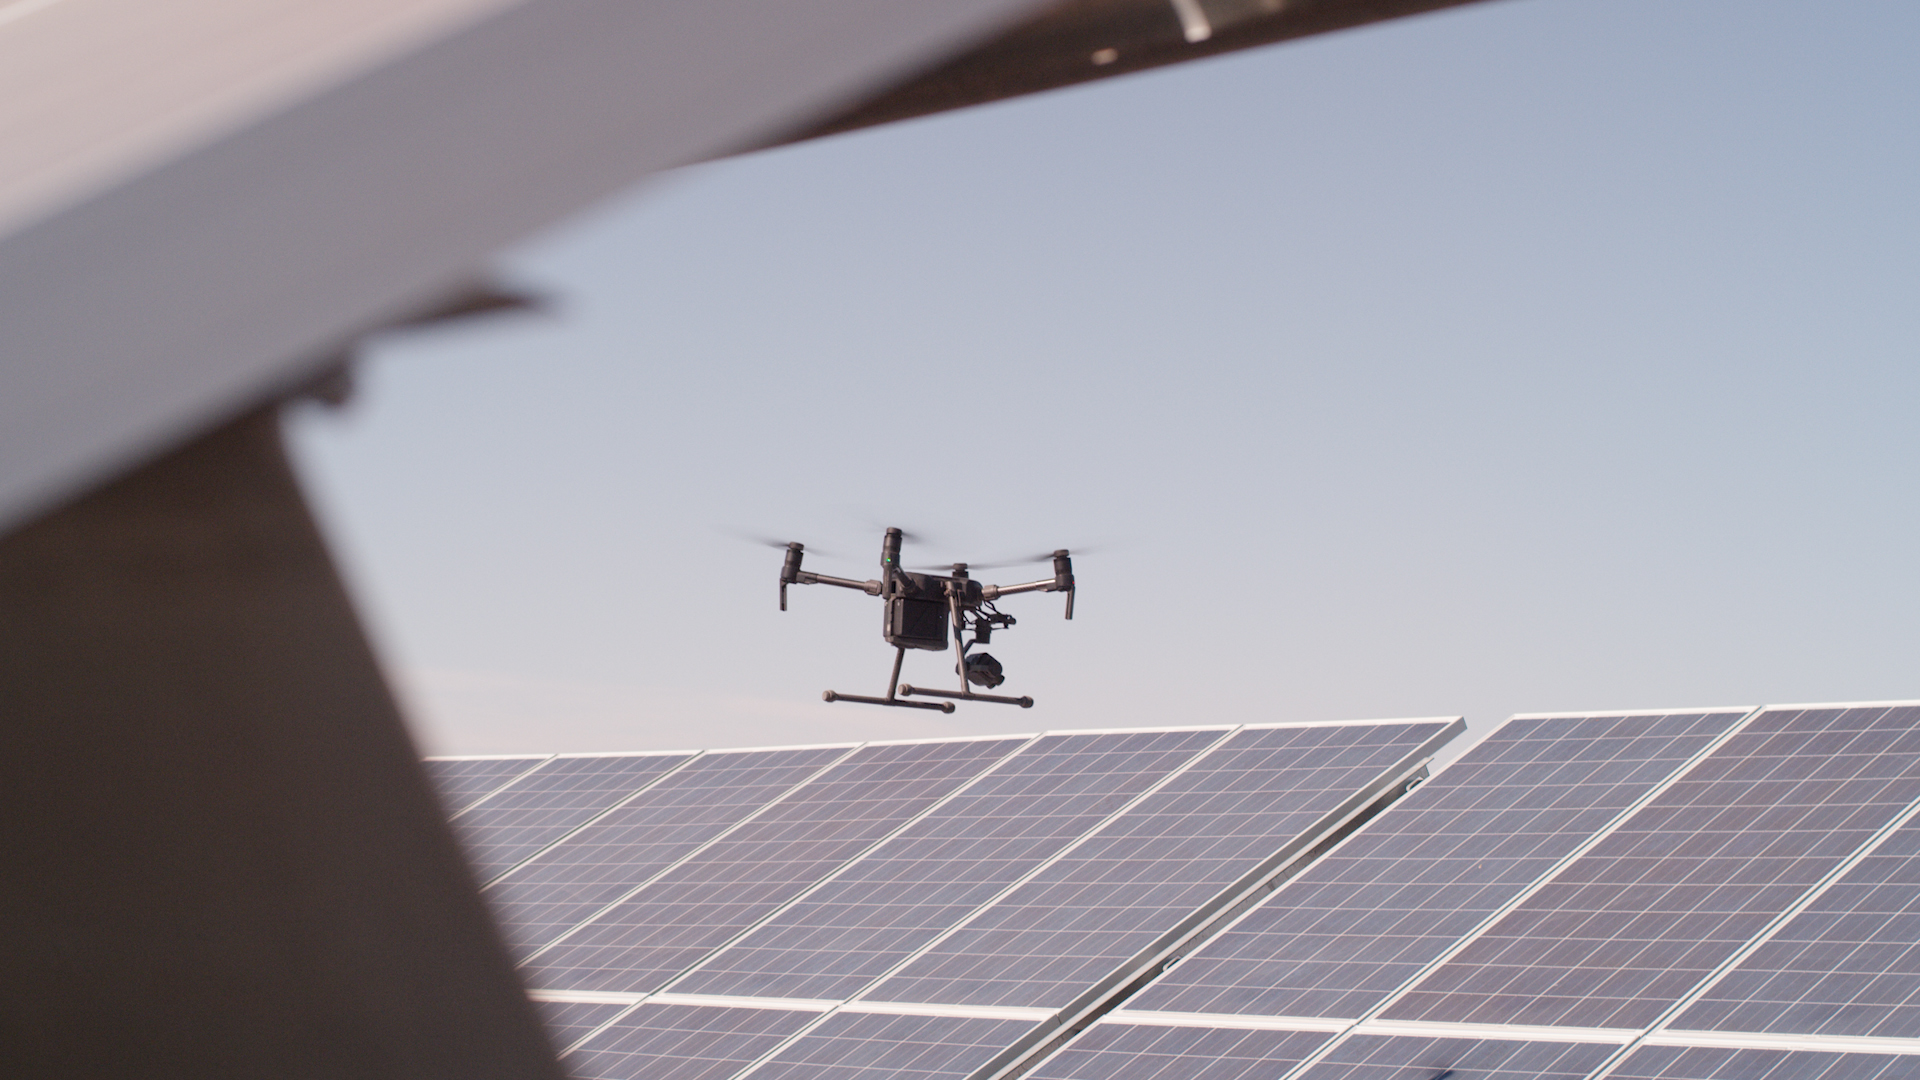 Drone above a photovoltaic system